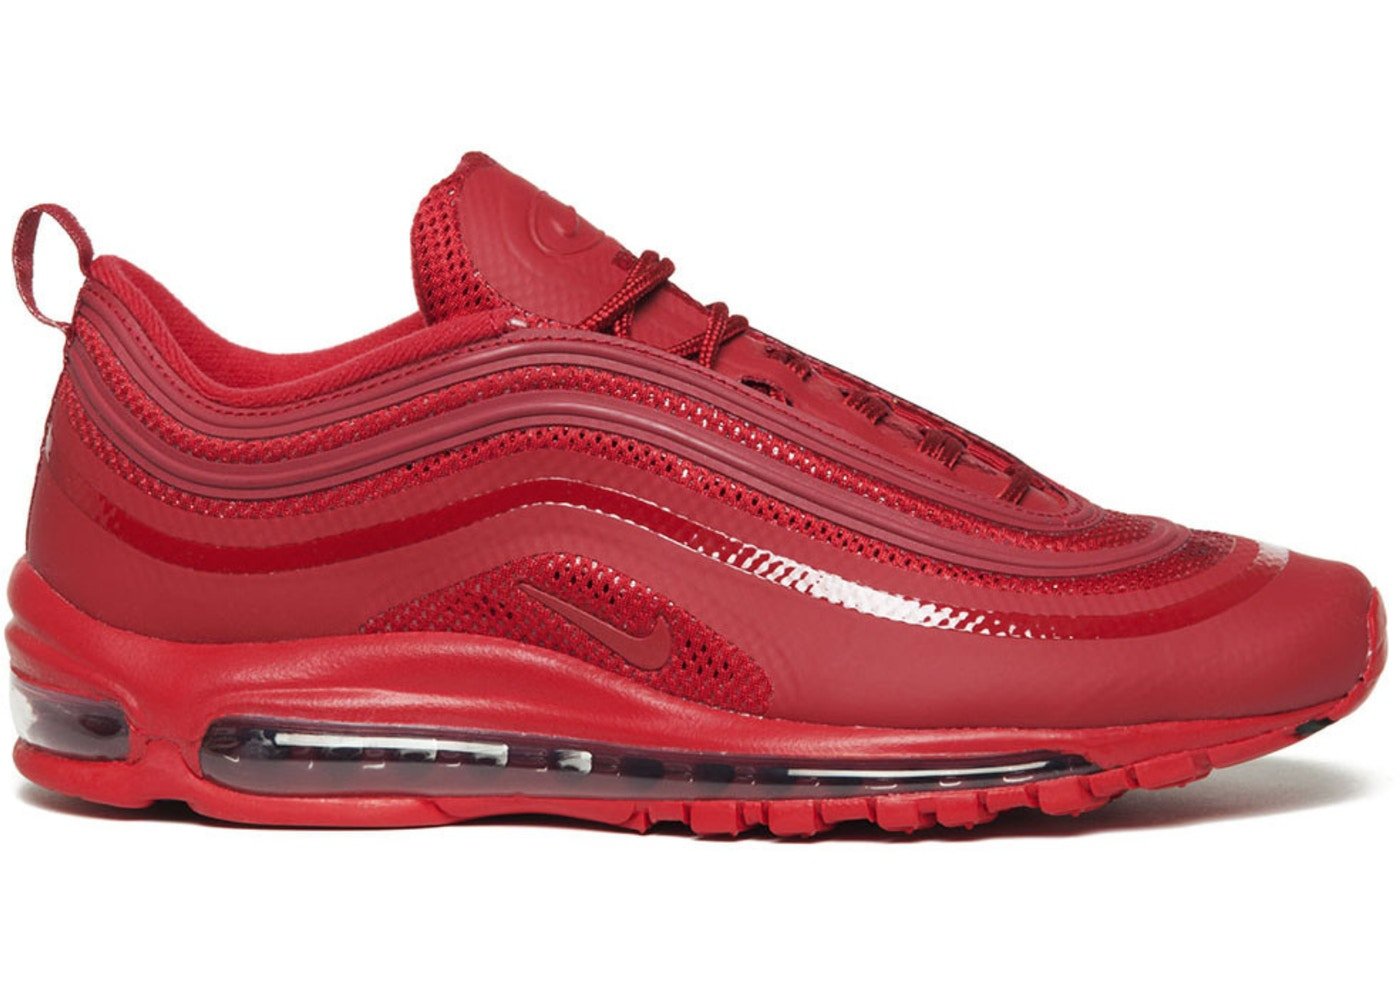 Perseo Canberra valor  Nike Air Max 97 Hyperfuse Gym Red - 518160-661